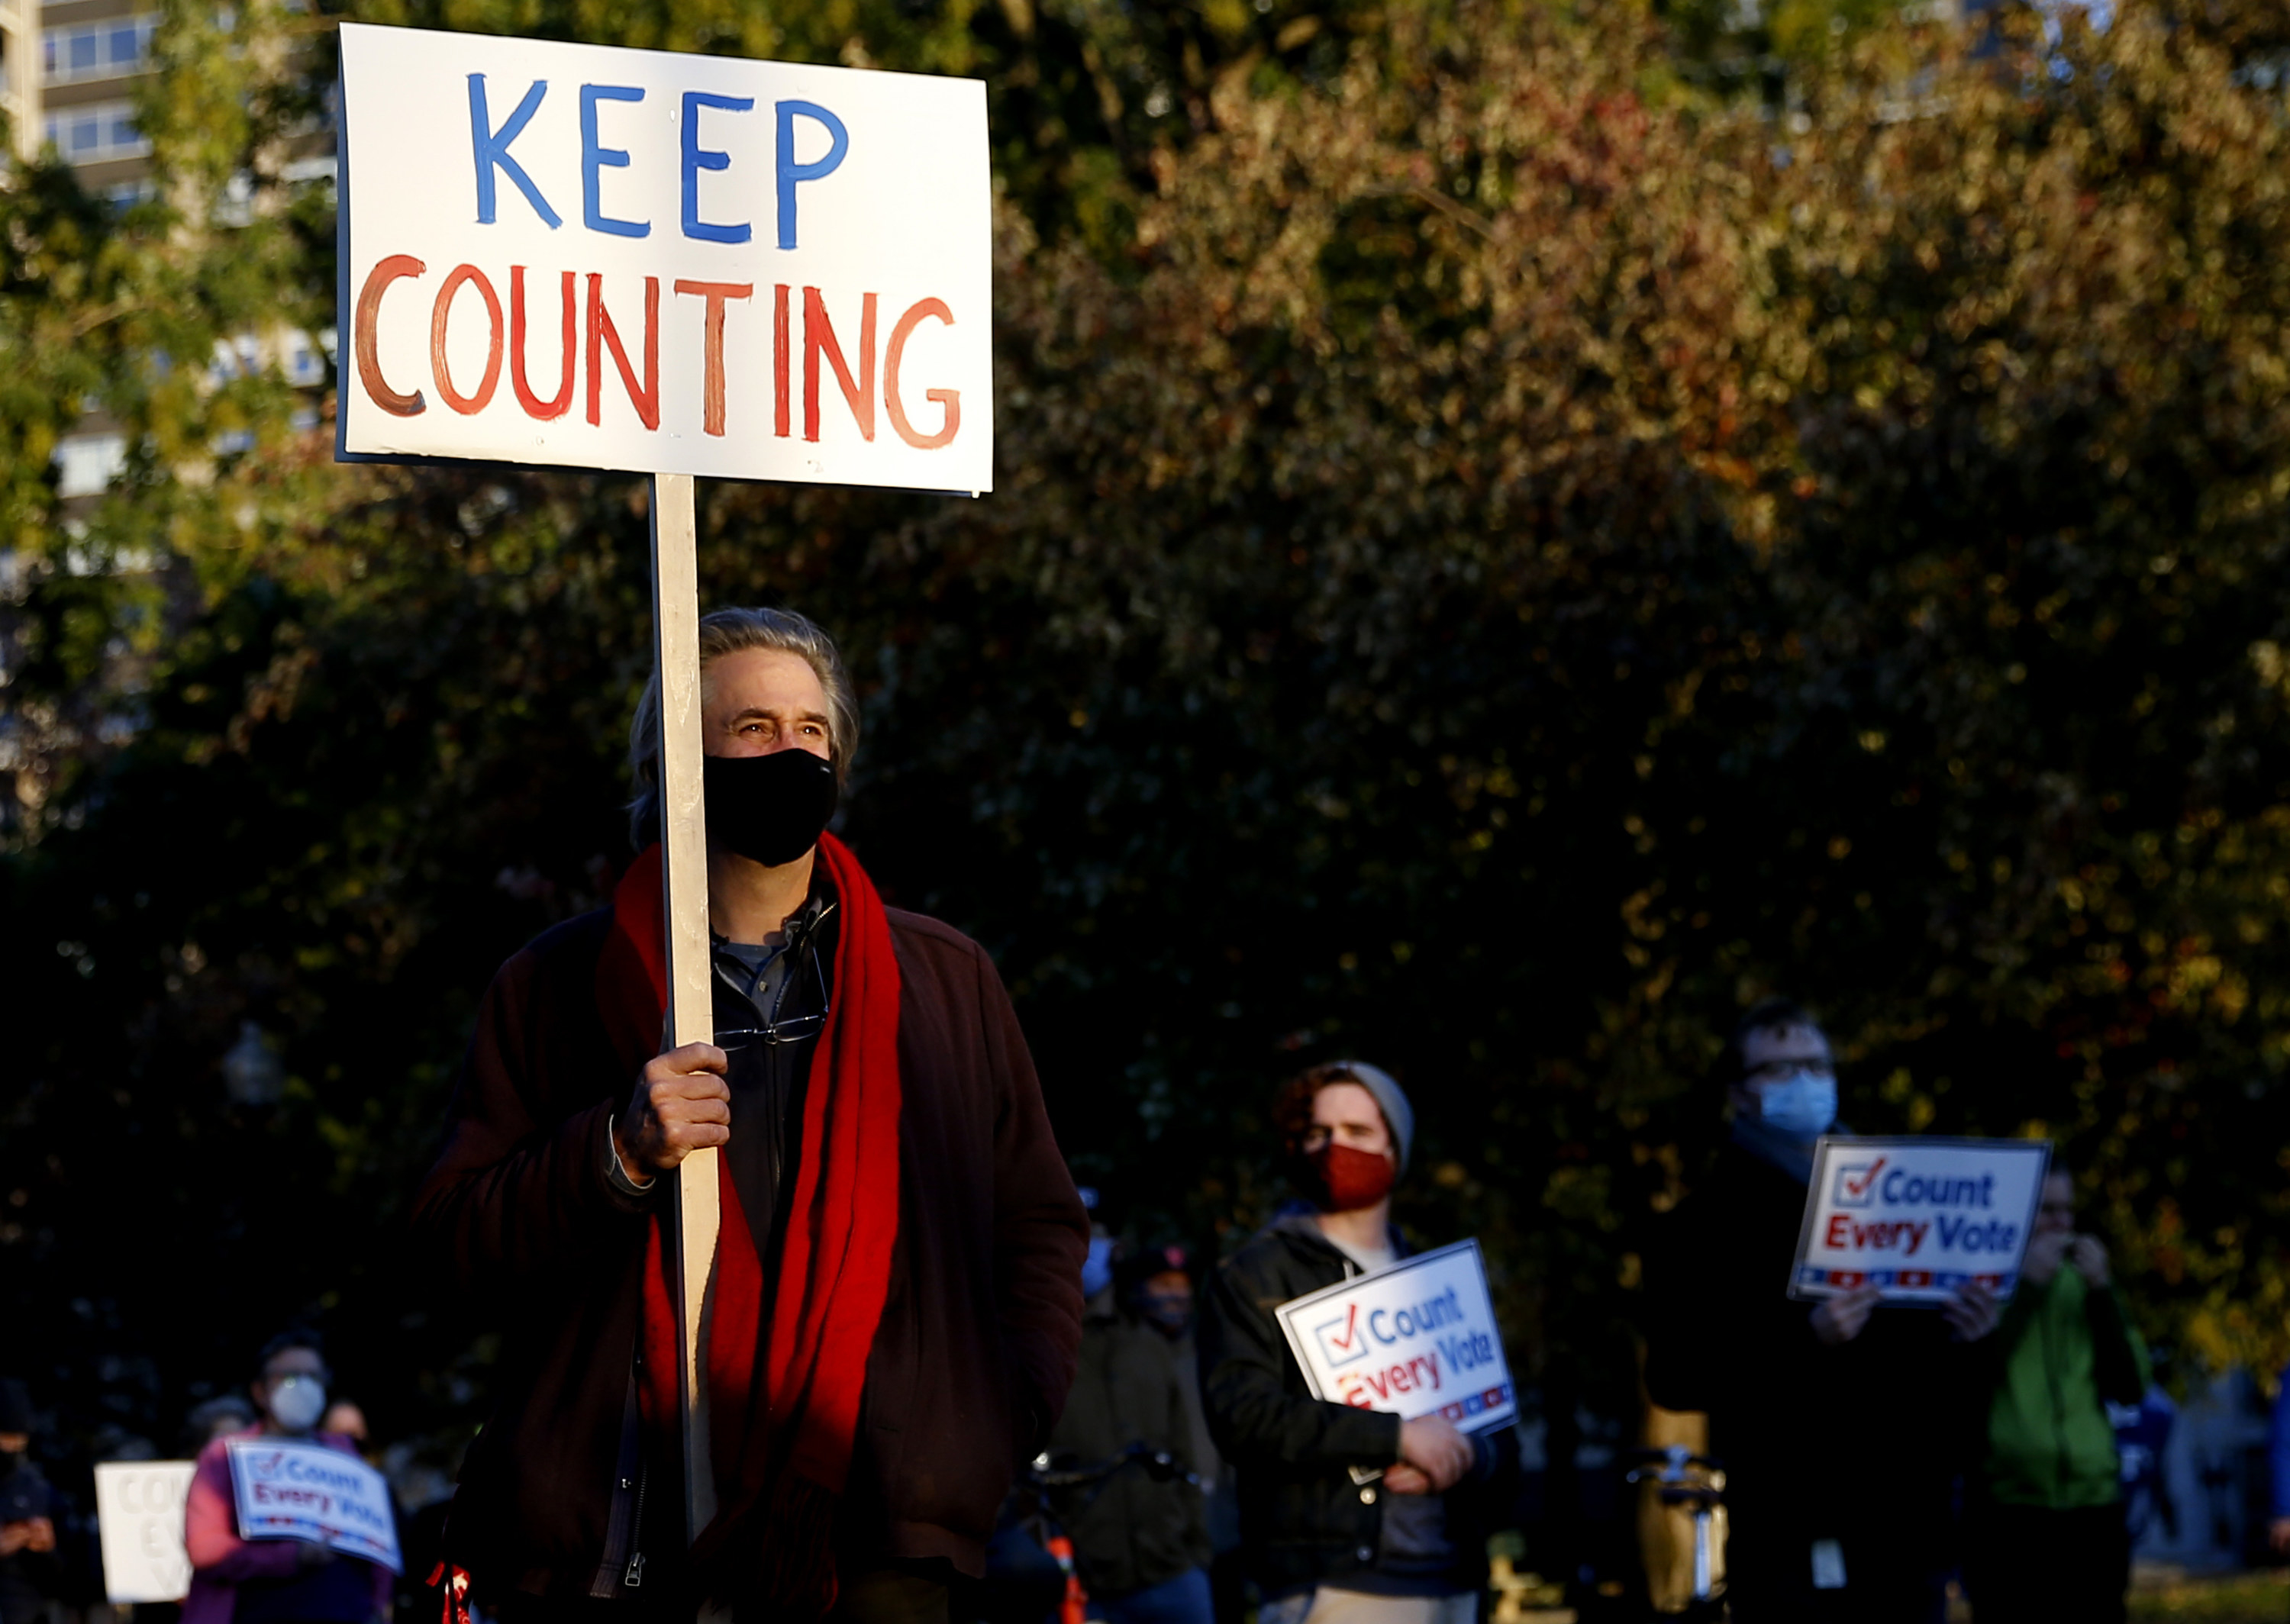 A person holding a keep counting sign